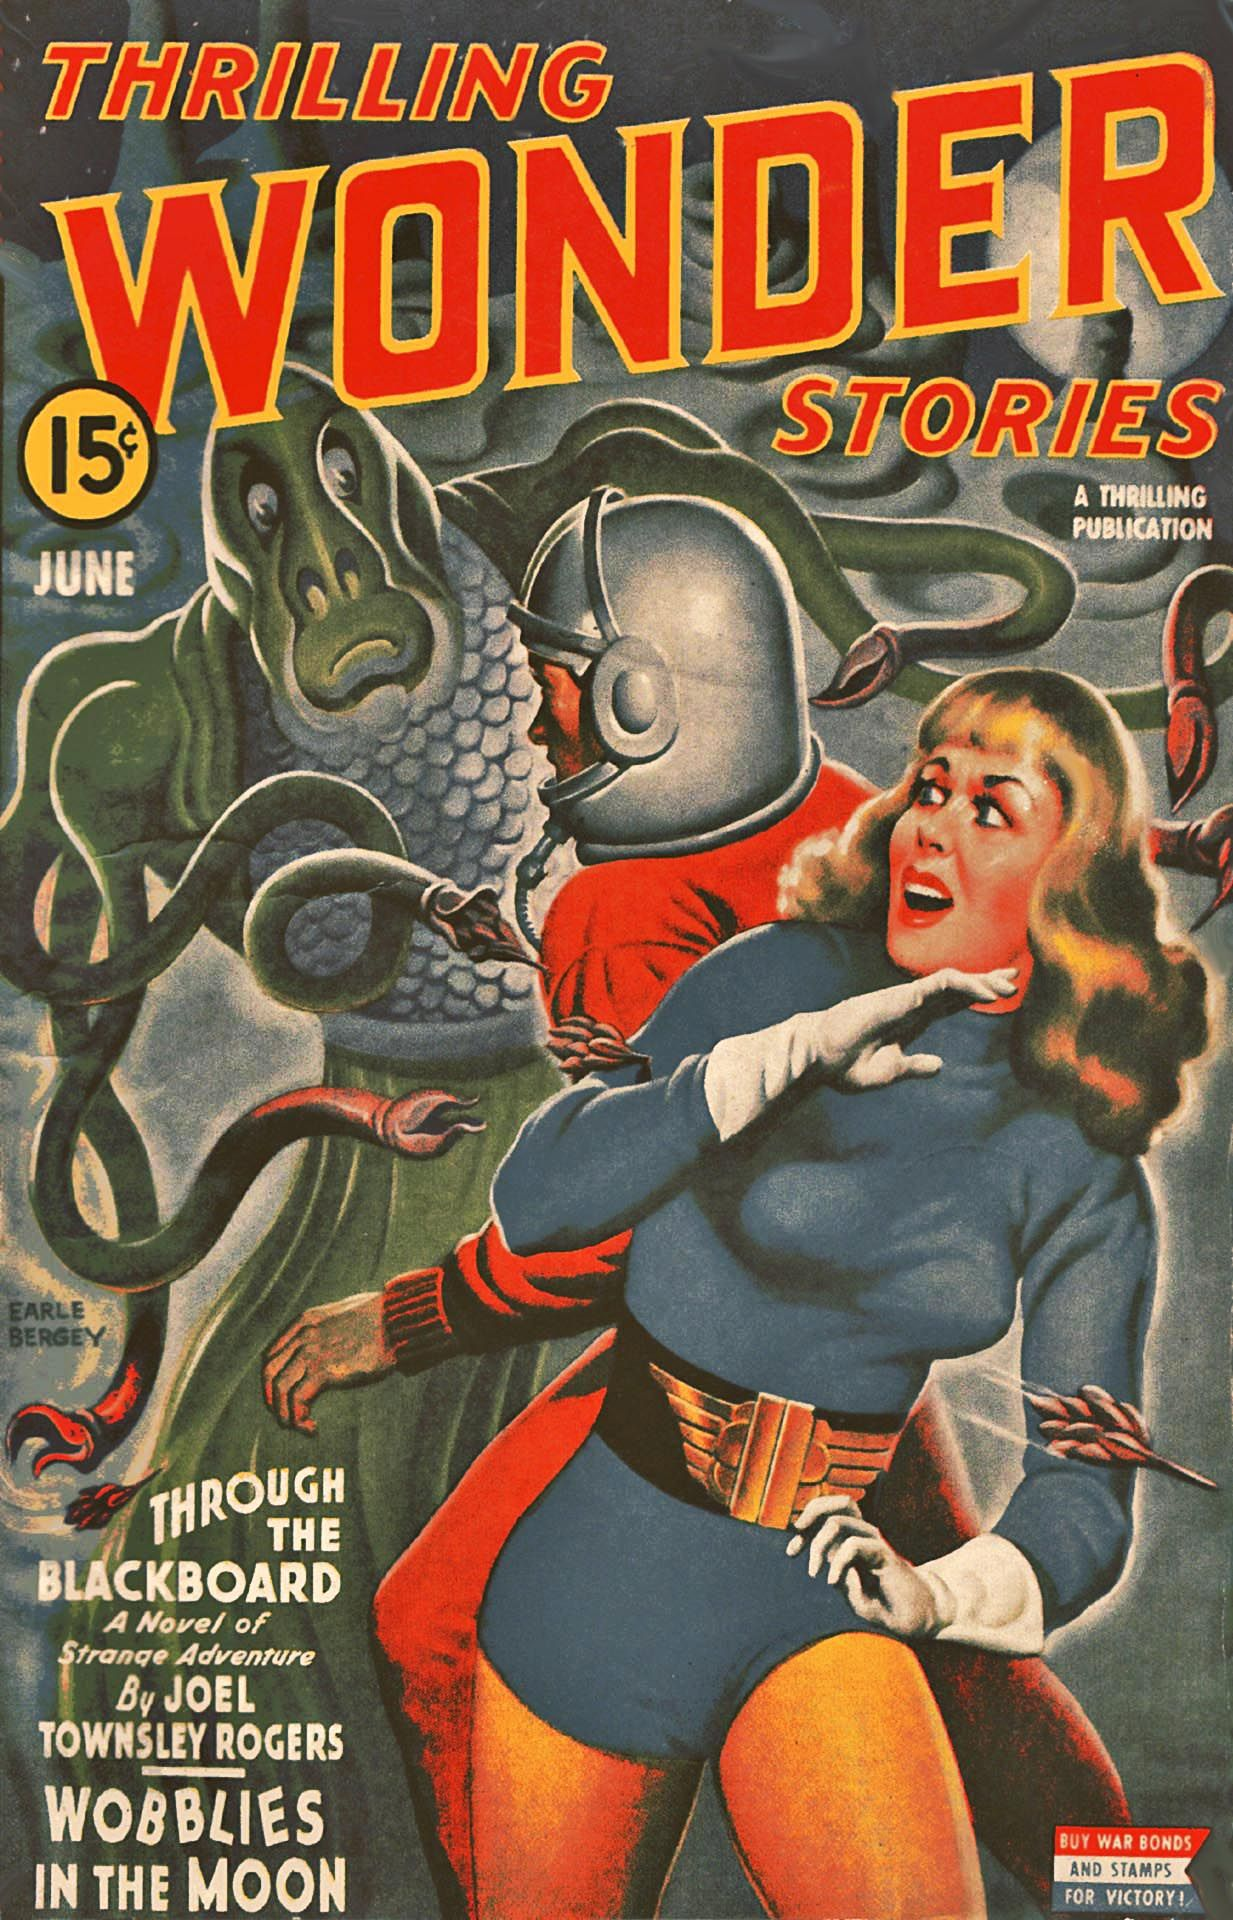 Thrilling Wonder Stories - Cover art by Earle Bergey